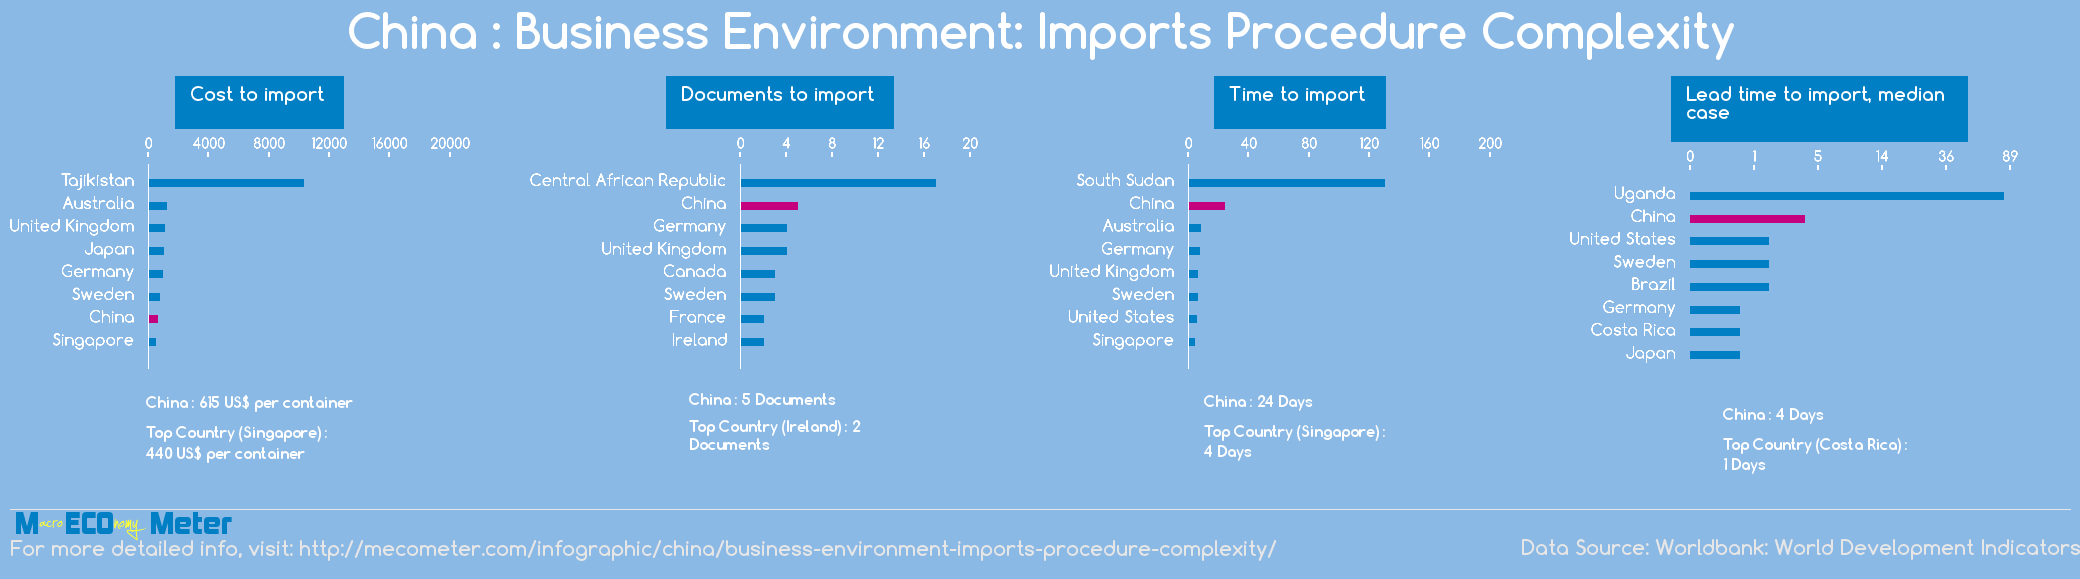 China : Business Environment: Imports Procedure Complexity